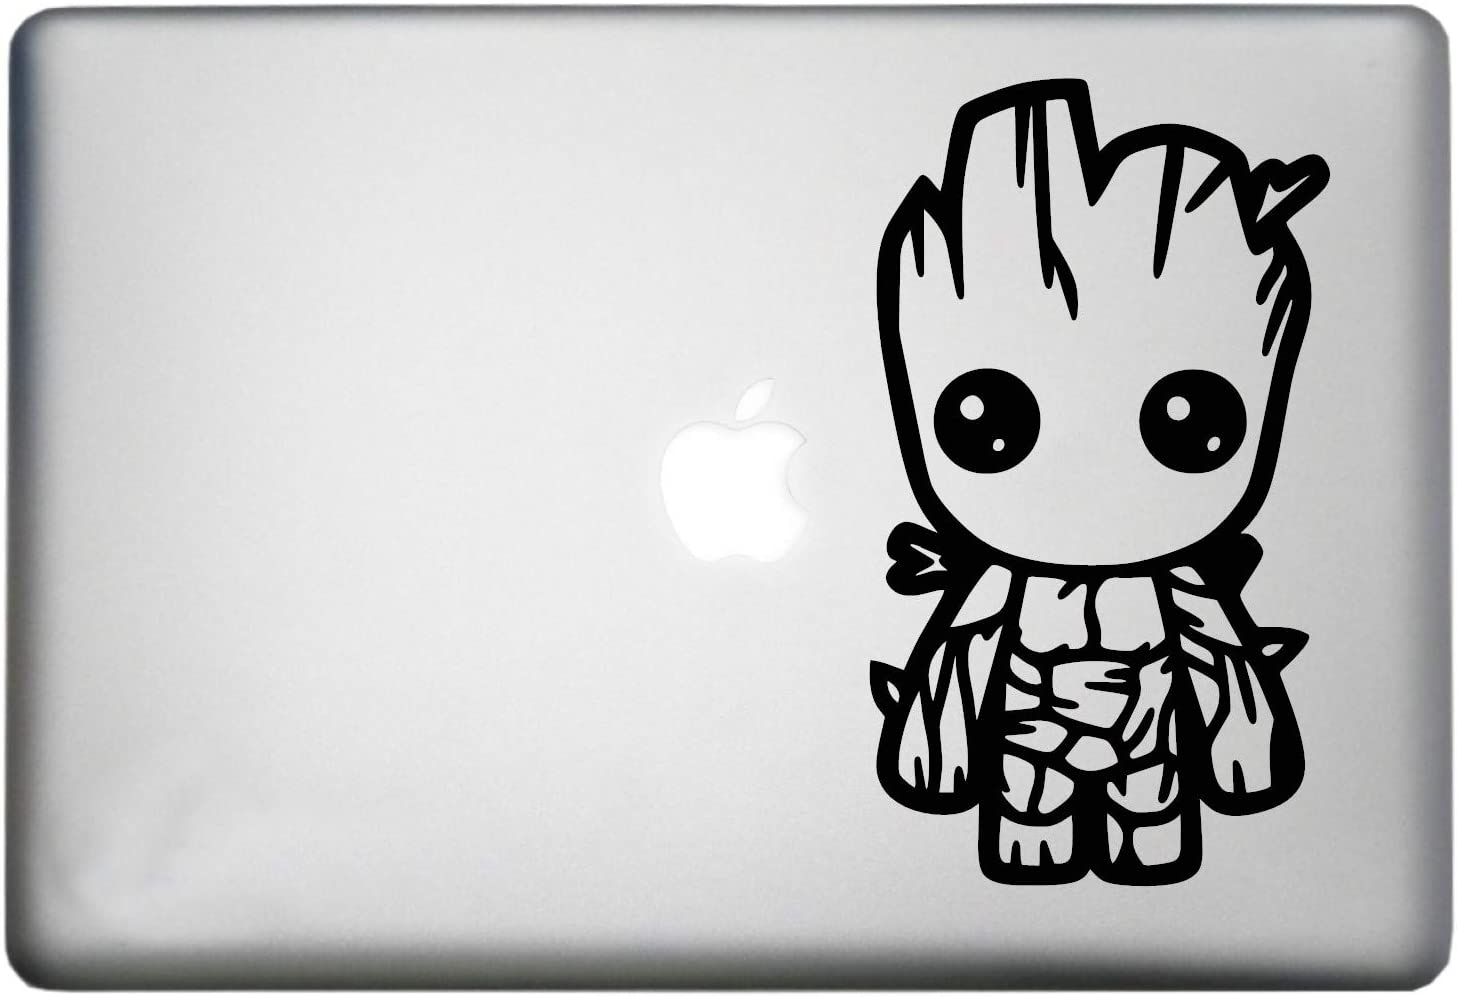 Baby Groot Sticker MacBook Pro Decal is a Baby Groot Plant Vinyl Decal. Laptop Sizes 11, 12, 13 and 15 inch. Looks Great with Your Guardians of The Galaxy Theme. Many Colors-Black